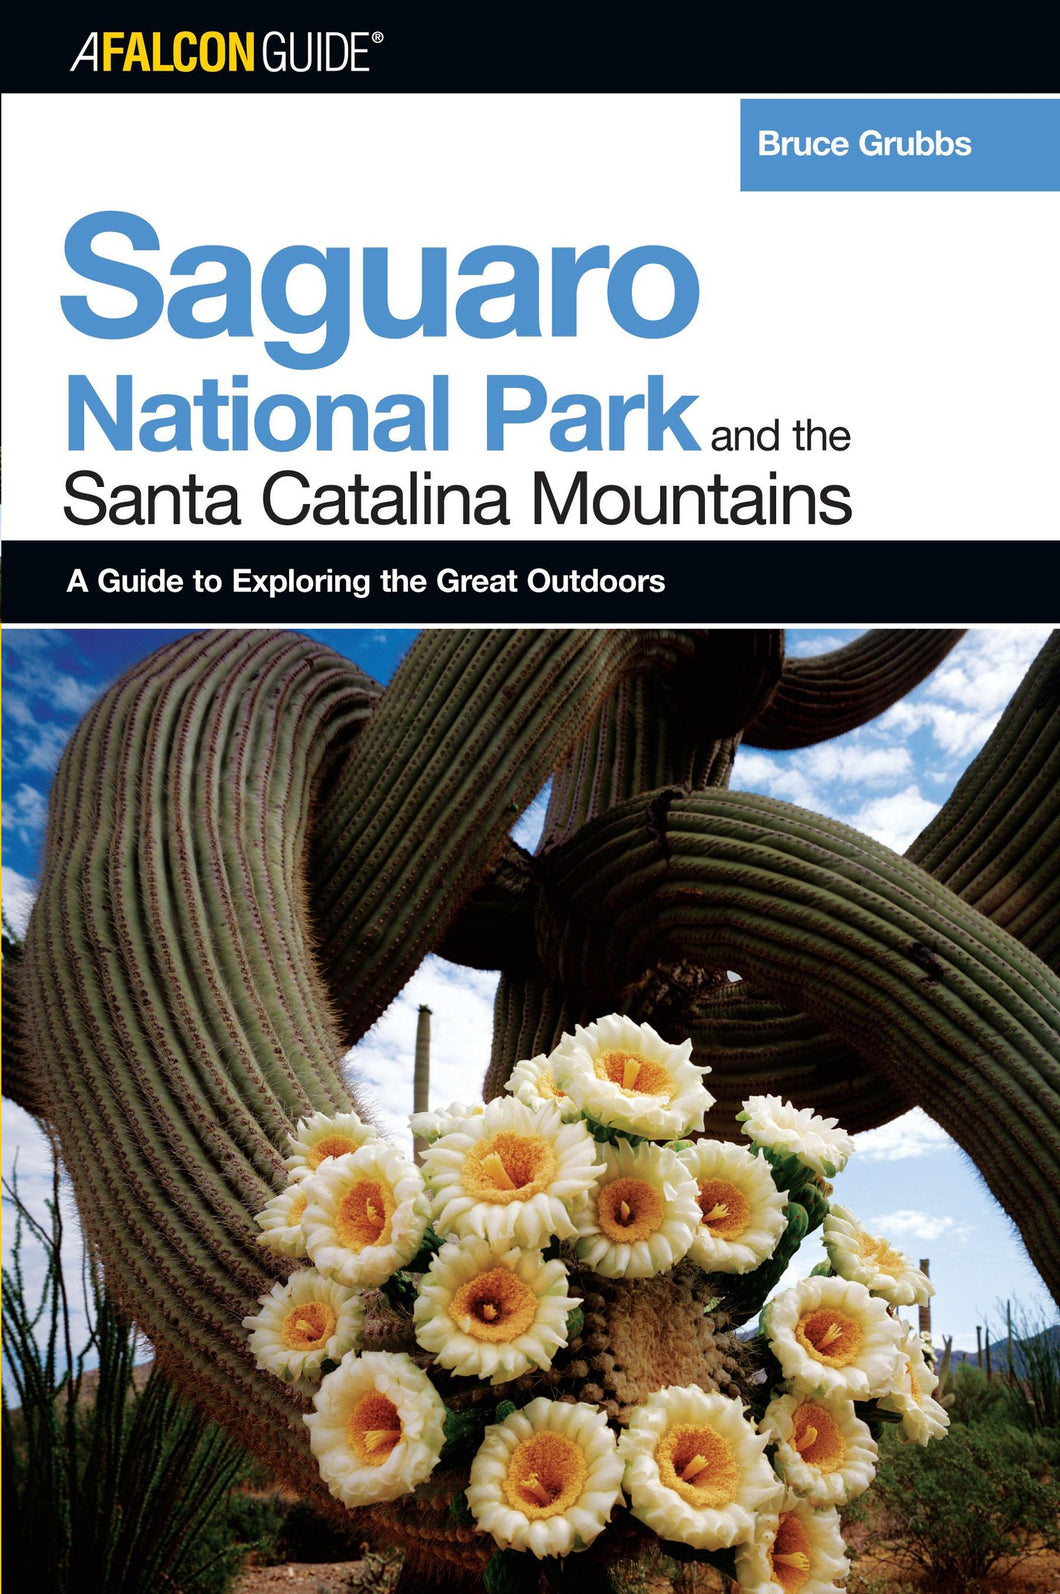 Saguaro National Park and the Santa Catalina Mountains: A Guide to Exploring the Great Outdoors